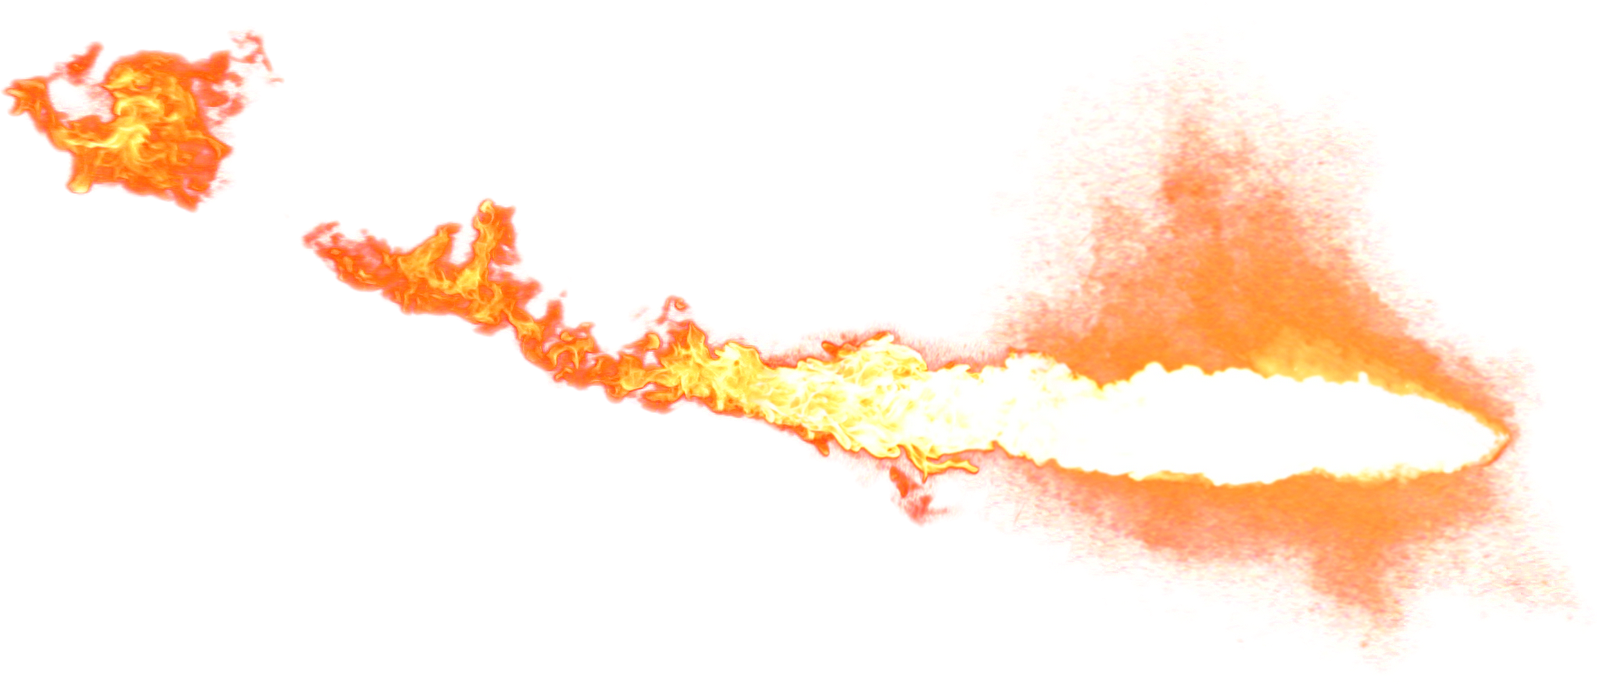 Fire effect png. Images free icons and